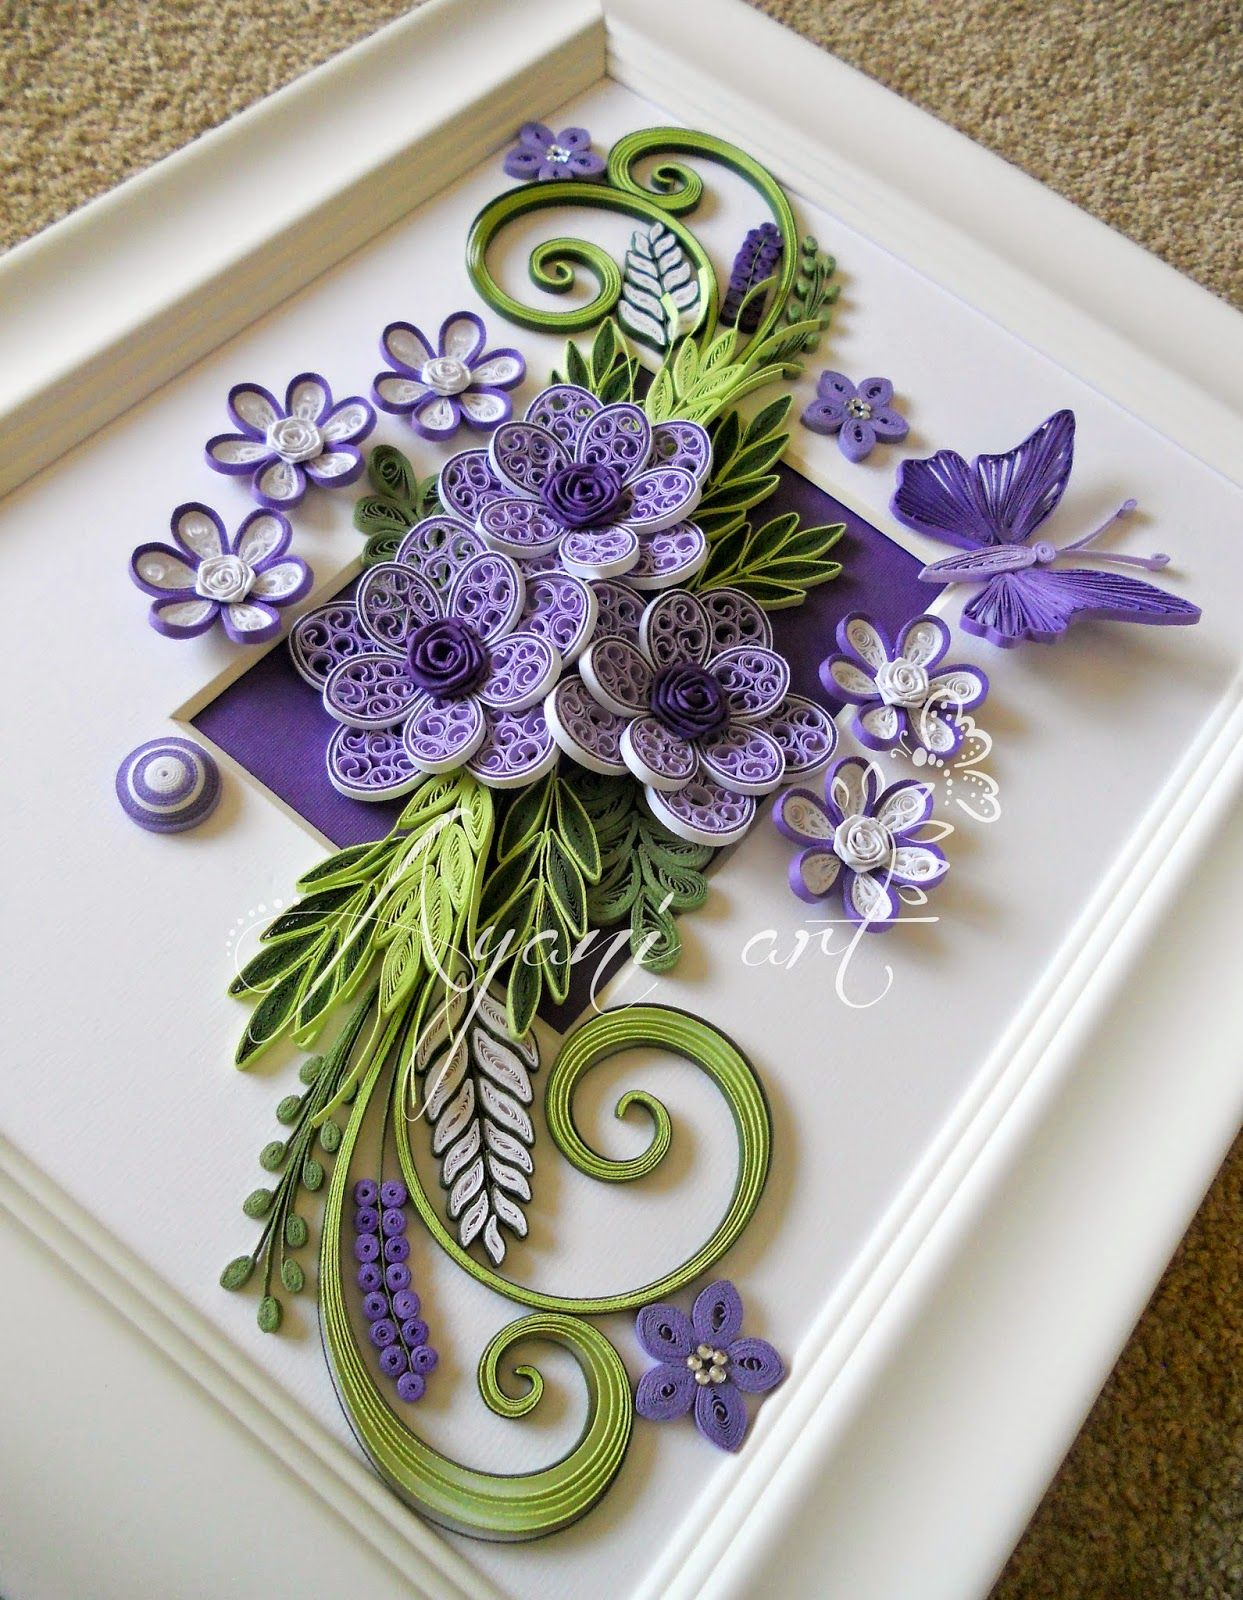 Ayani art: Purple and Green Quilling | Quilling designs ...